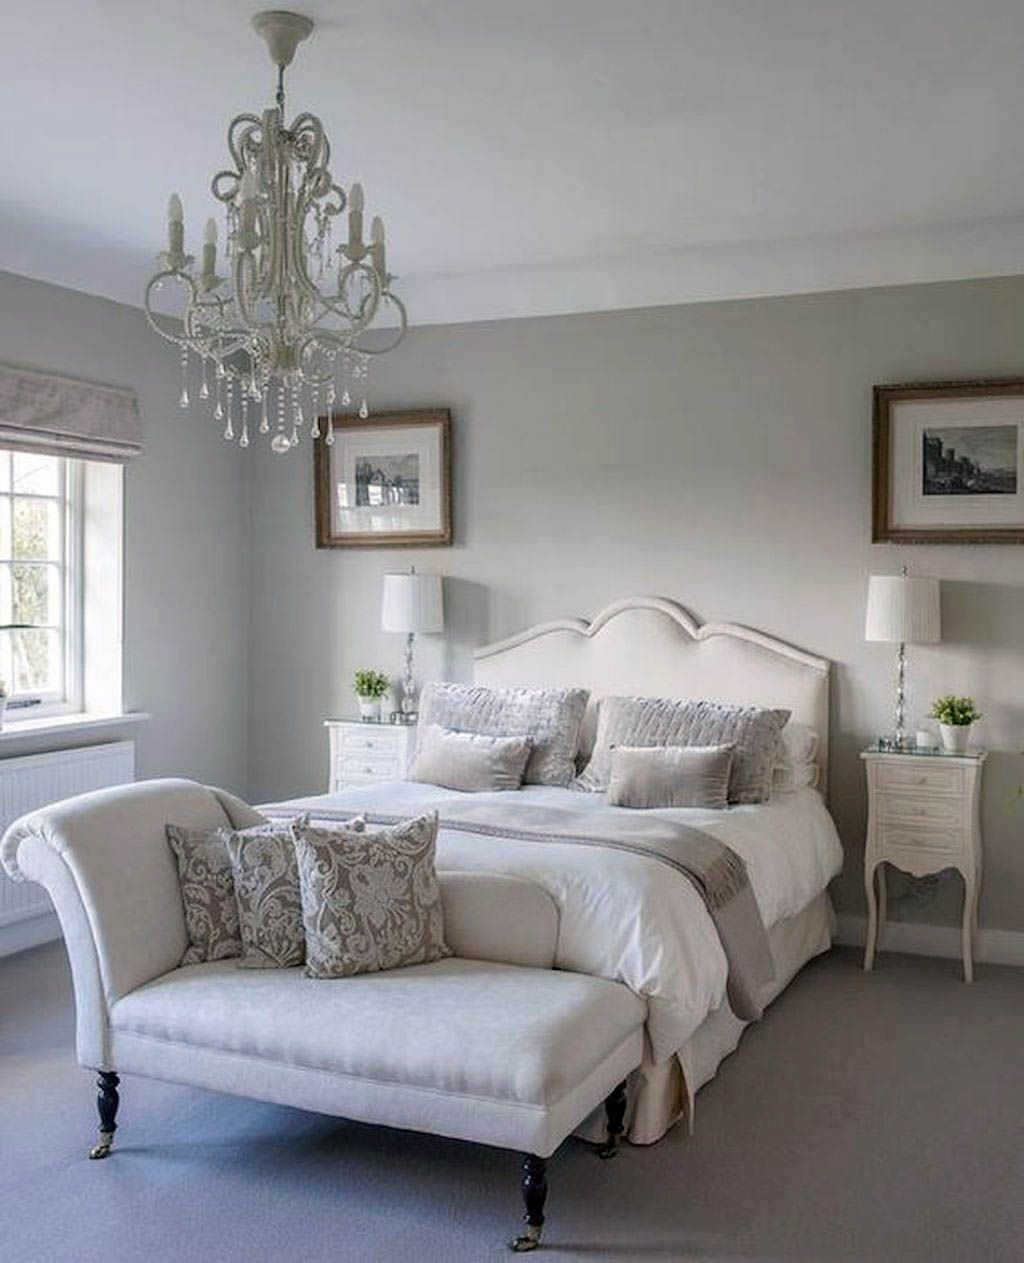 Small Master Bedroom Idea Pinterest New Tips For Spectacular Bedroom Ideas Pinte Country Bedroom Design Country Bedroom Decor French Country Decorating Bedroom